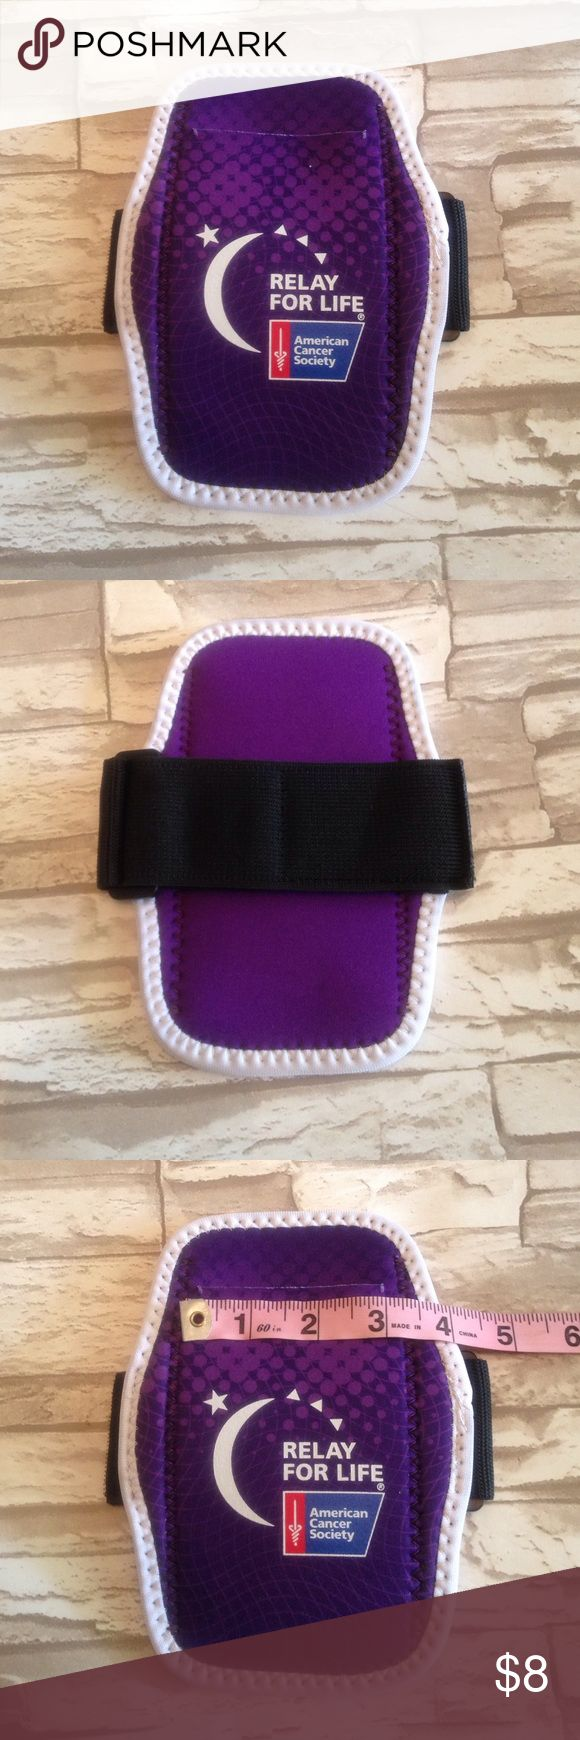 """💜Relay for Life Cell Phone Arm Band Brand New neoprene cell phone arm band from Relay for Life! Wear your Relay Pride during your workout! Never used! Opening is 3"""" wide. My iPhone 5 fits with tons of room. ⭐️⭐️All profits will be donated to ACS!!⭐️⭐️ American Cancer Society Accessories Phone Cases"""